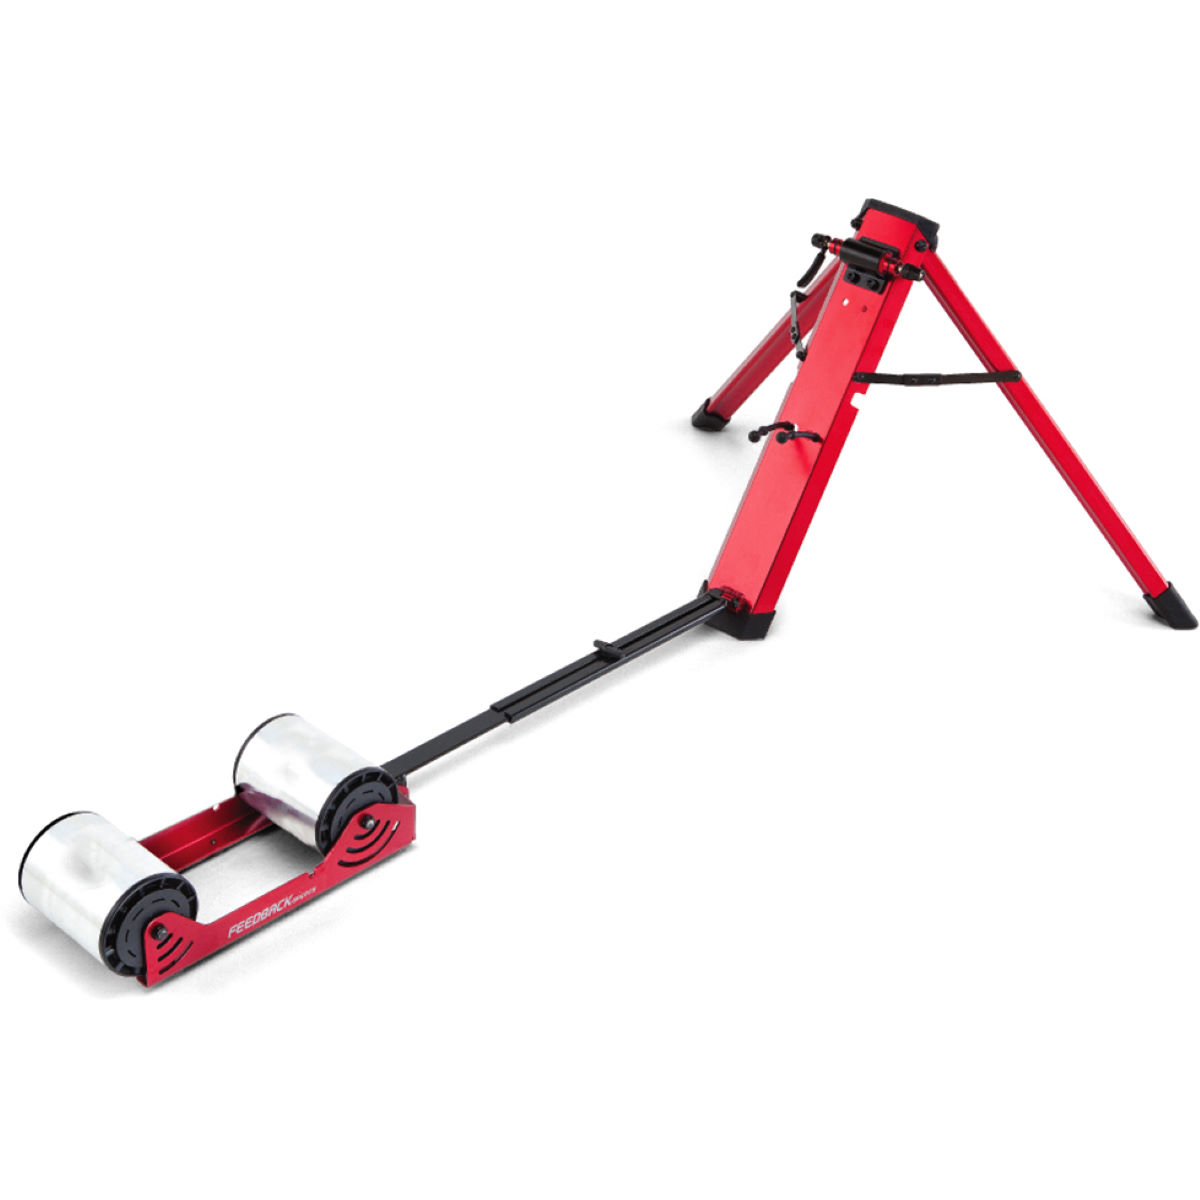 Feedback Sports Omnium Portable Bike Roller Trainer - Red  Rollers